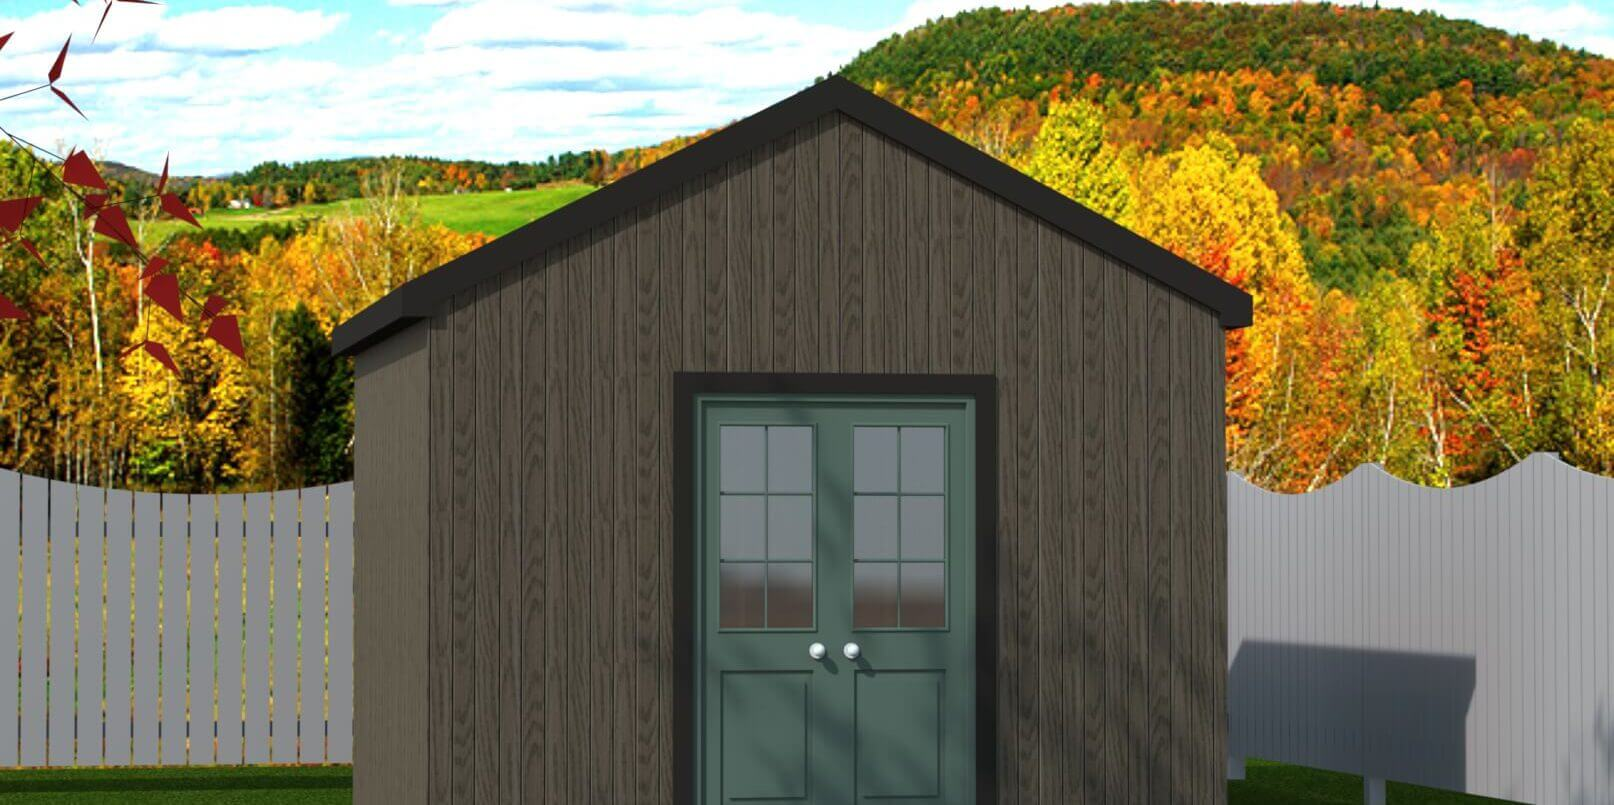 144 sq.ft. timber mart shed with french door